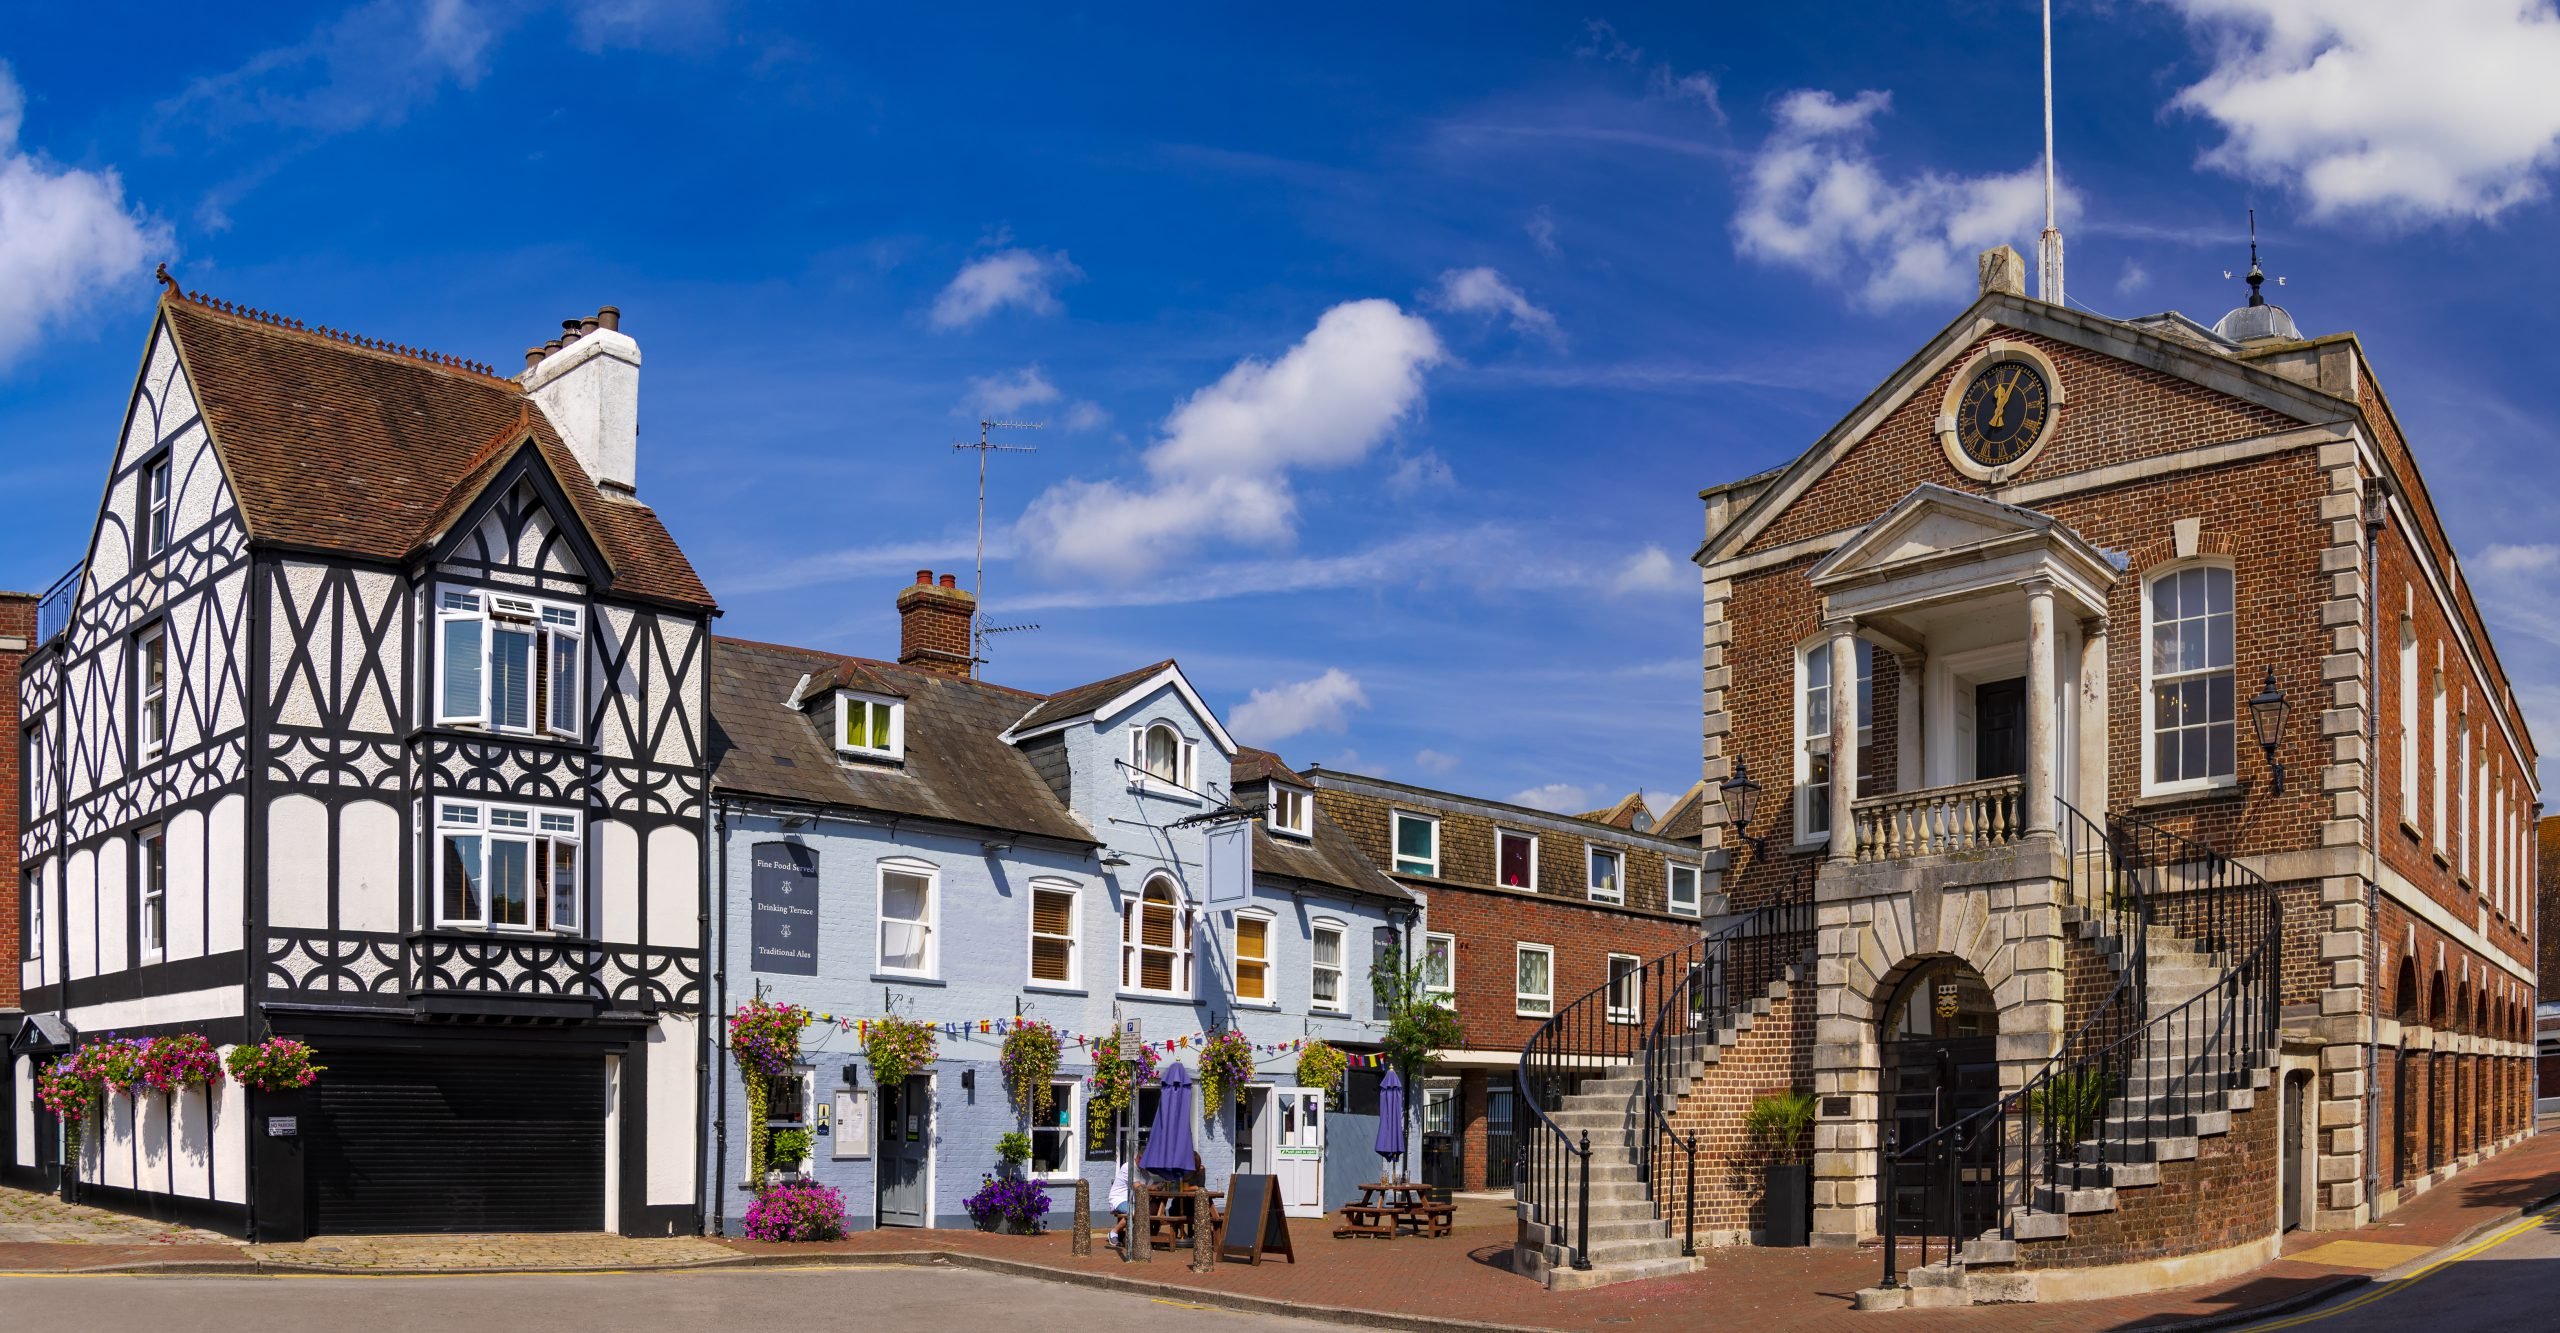 Historic Old Poole Town buildings